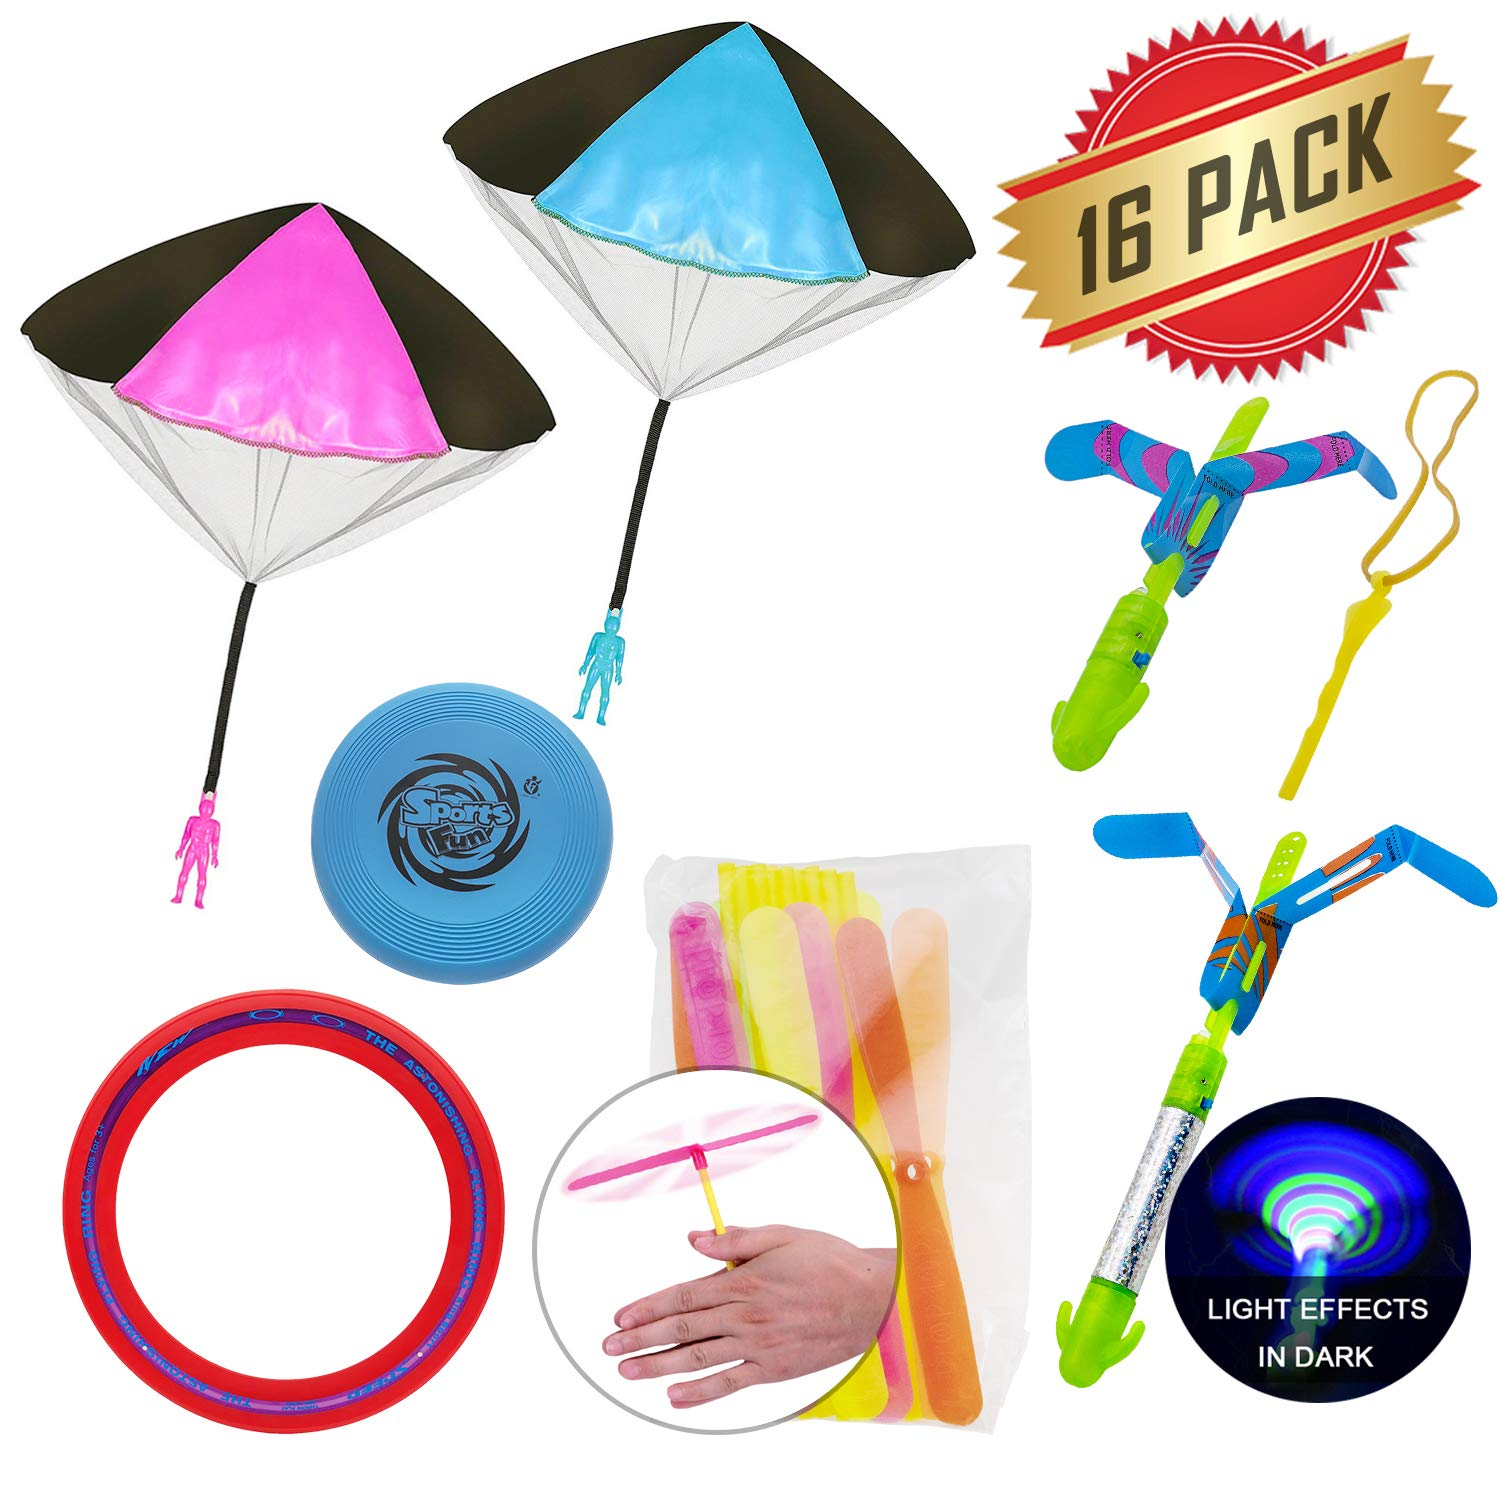 ELifeBox 16 PACK Out Door Catapult, Throwing, Fun, Challenging, Sports Toy Set - Rocket Copters, Flying Disc Ring, Frisbee Disc, Plastic Dragonfly, Throwing Parachute Men Toy